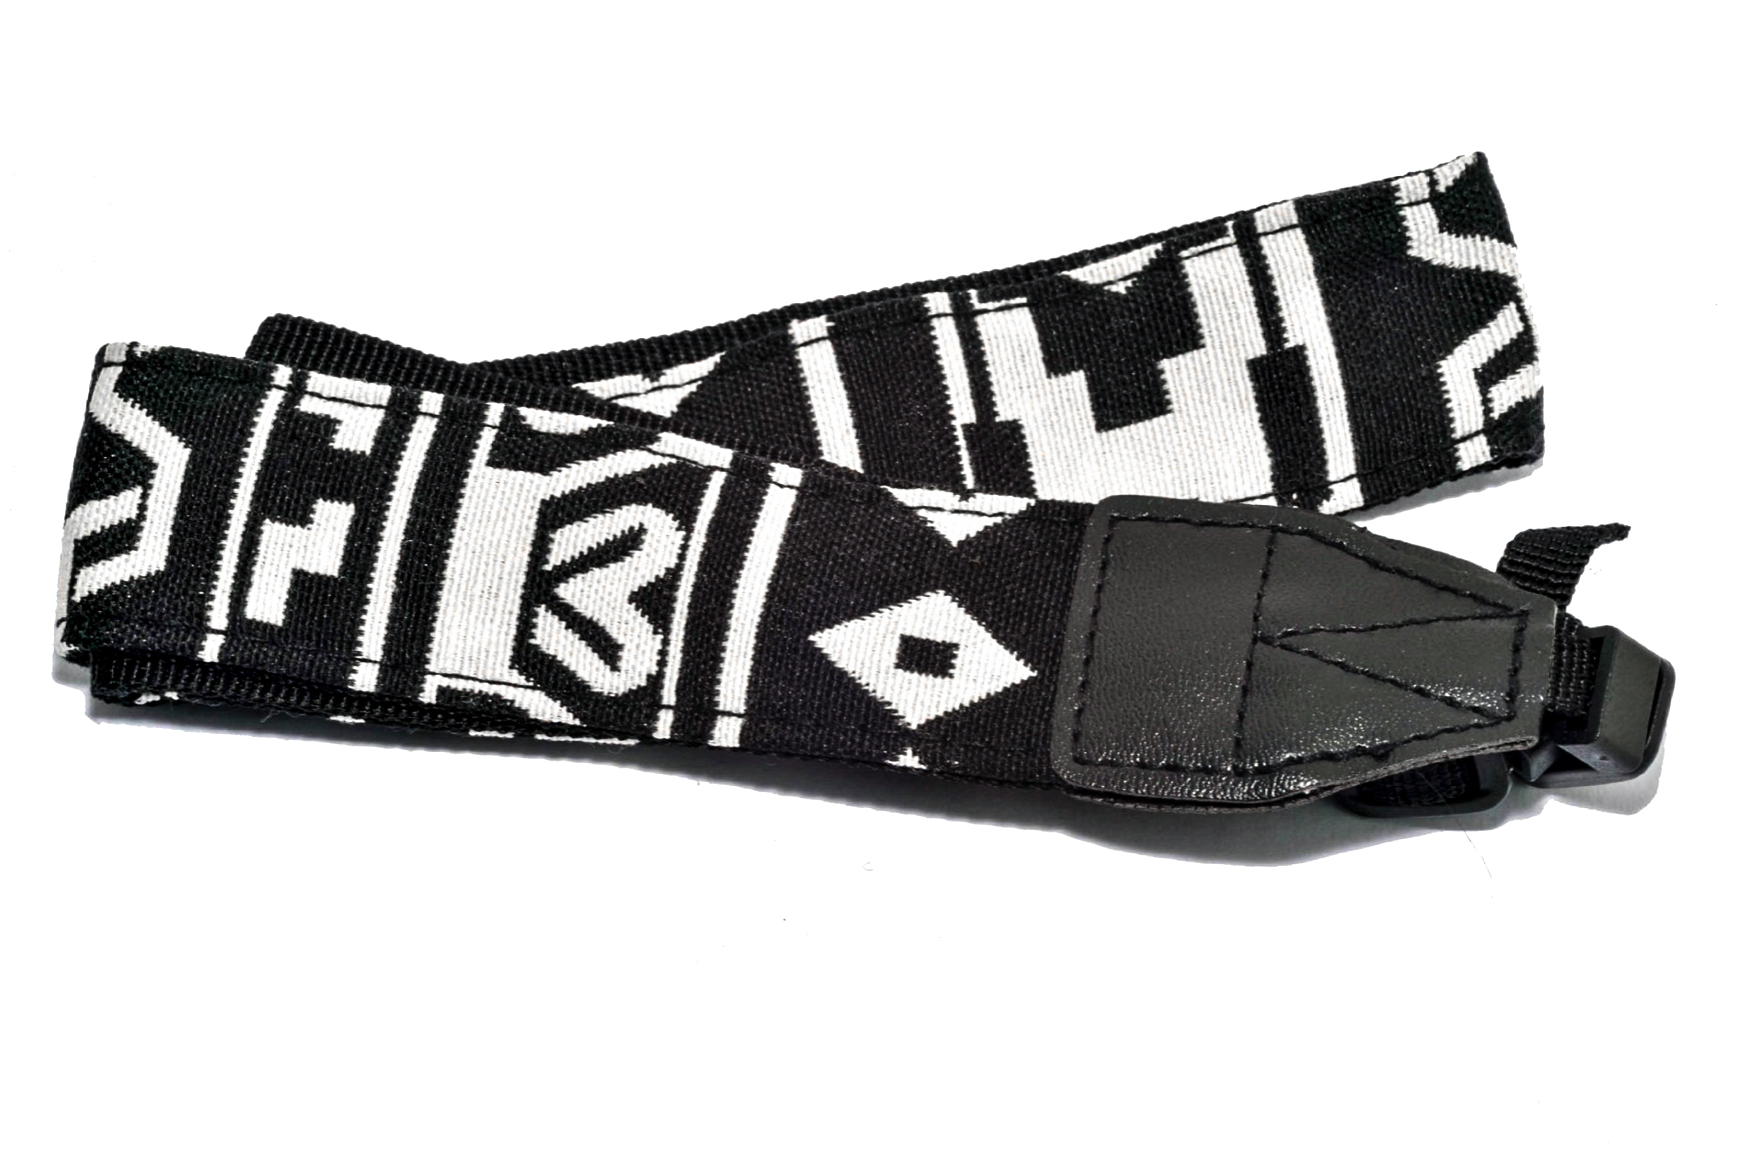 Retro Black and White Patterned Camera Strap for sale on The South West Collective of Photography Ltd